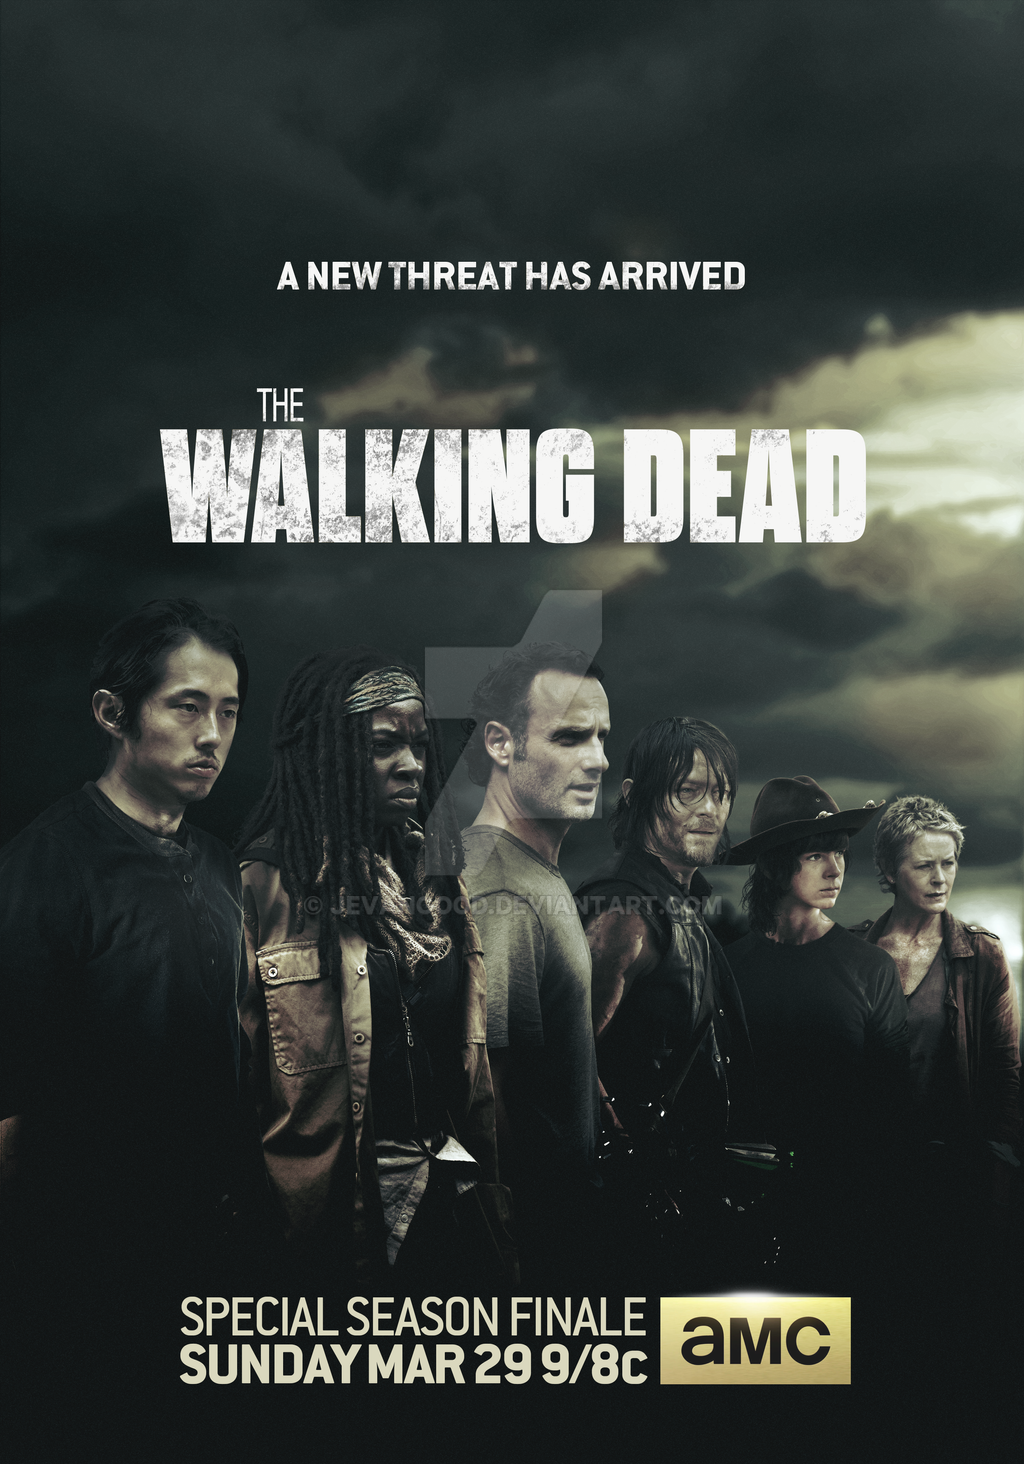 The Walking Dead Season 5 Wallpaper Hunt Or Be Hunted